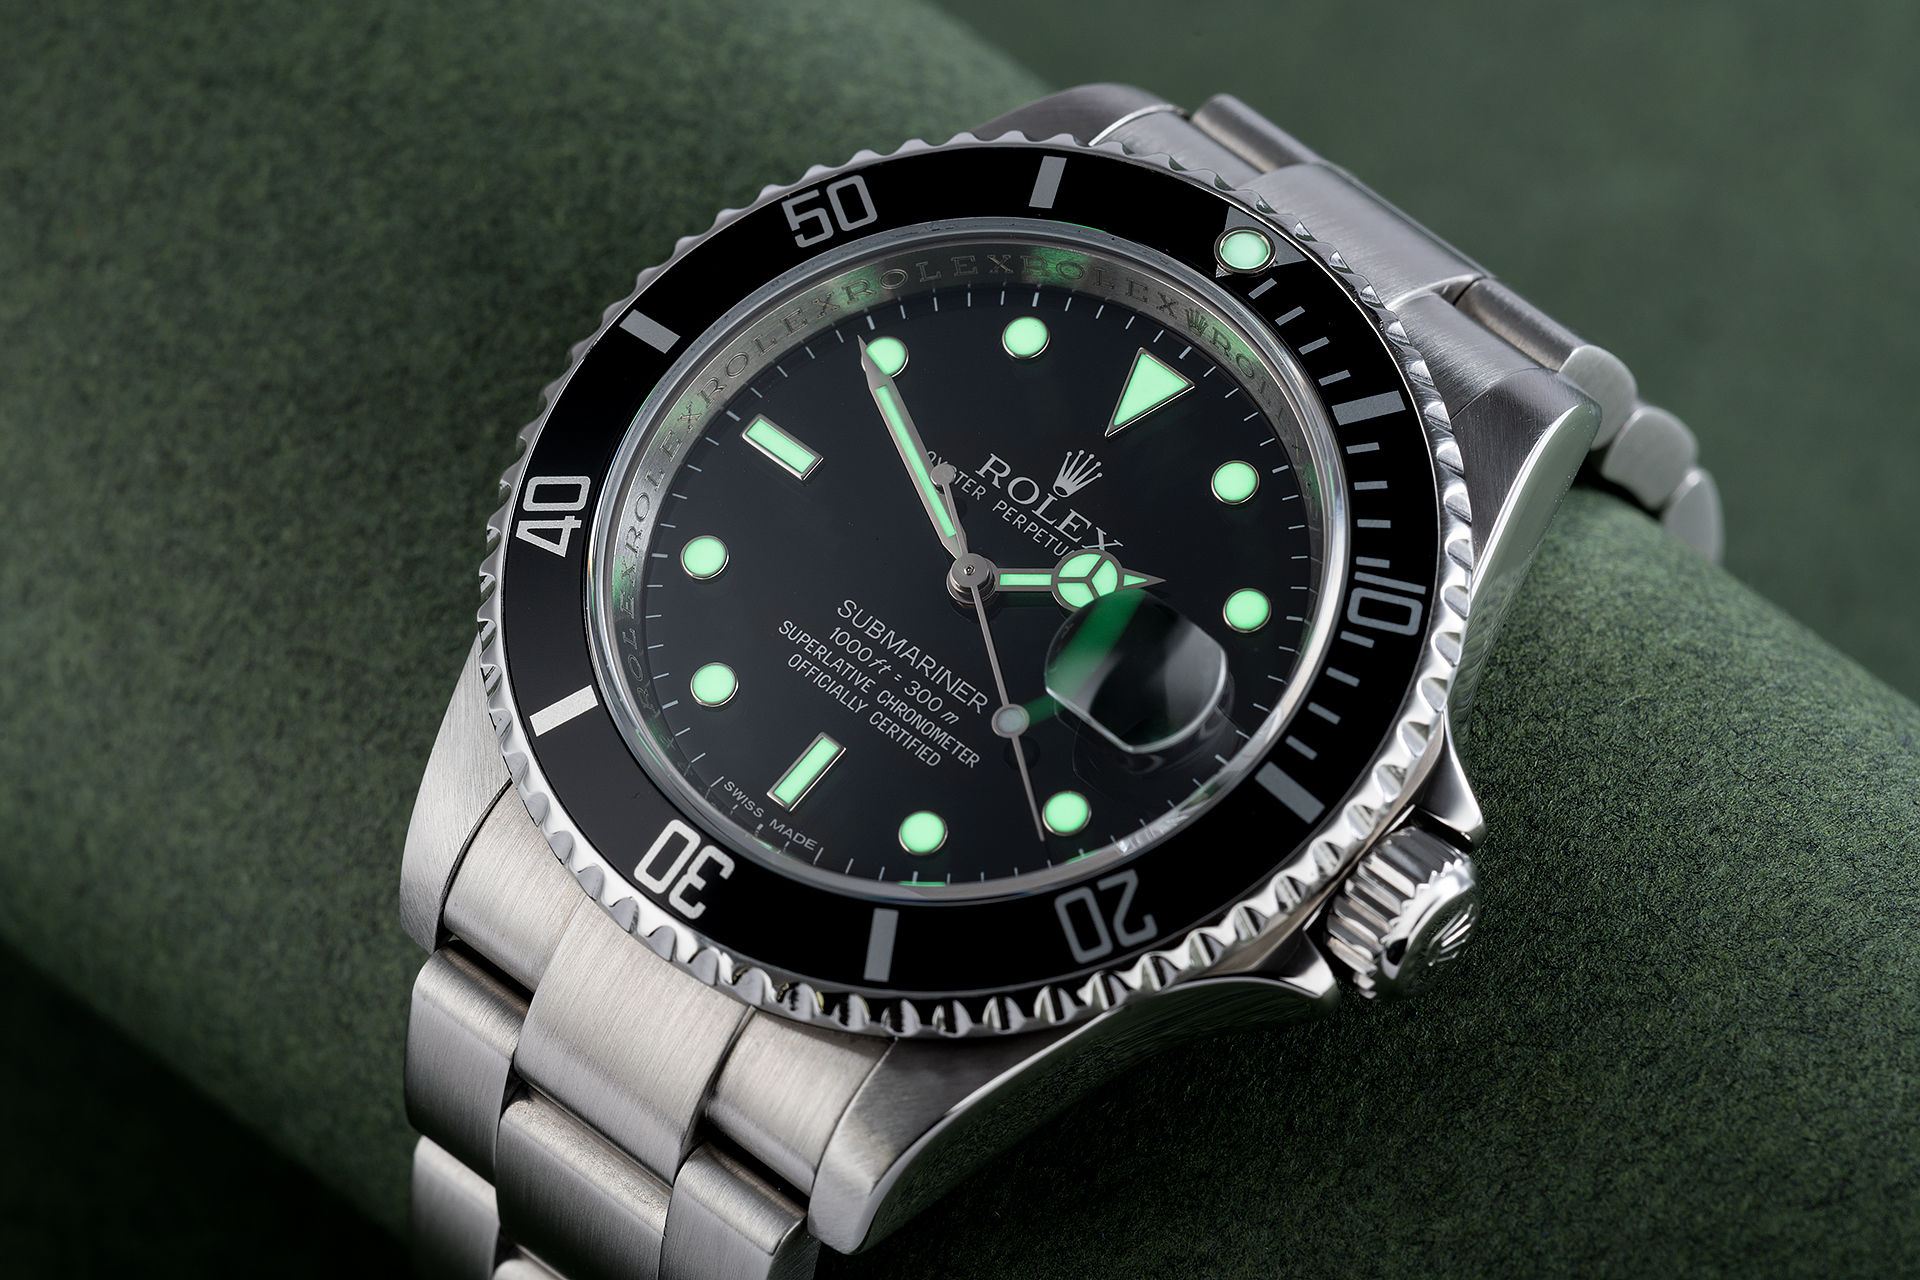 ref 16610 | Extremely Rare 'Final Batch' | Rolex Submariner Date